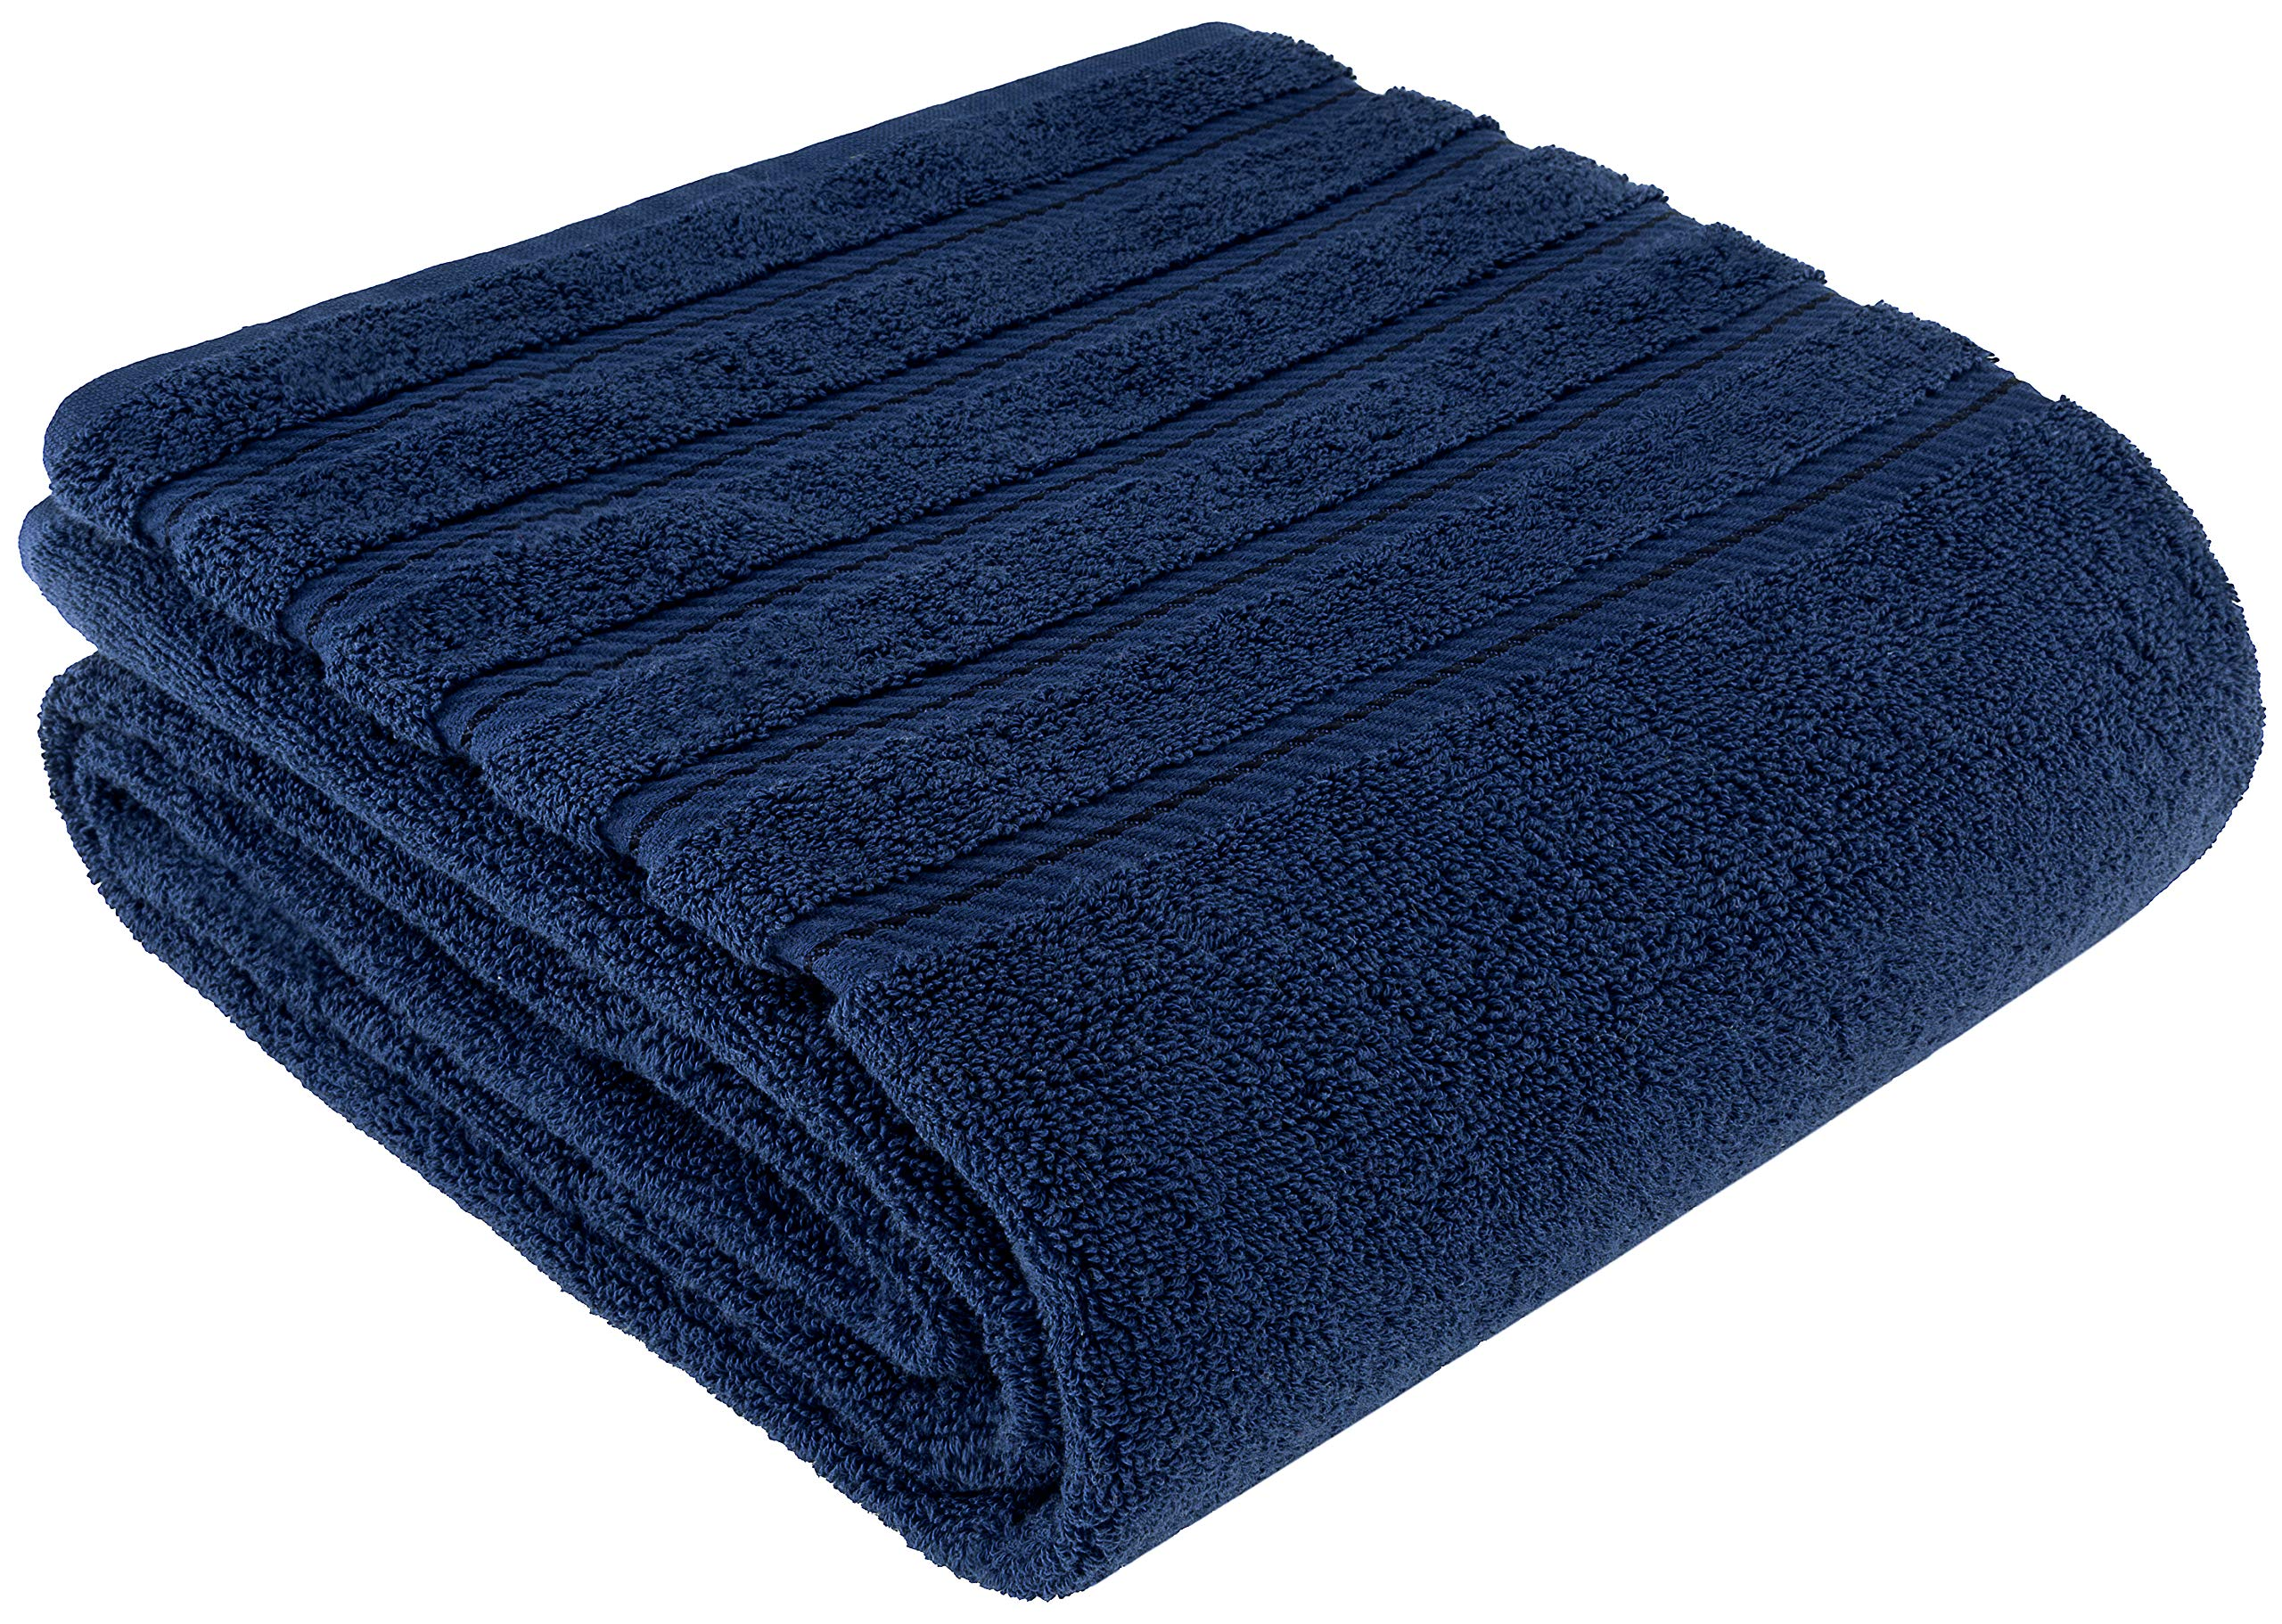 Premium, Luxury Hotel & Spa Quality, 35x70 Extra Large Jumbo Size Bath Towel, Bath Sheet Cotton for Maximum Softness and Absorbency by American Soft Linen, [Worth $34.95] (Navy Blue)